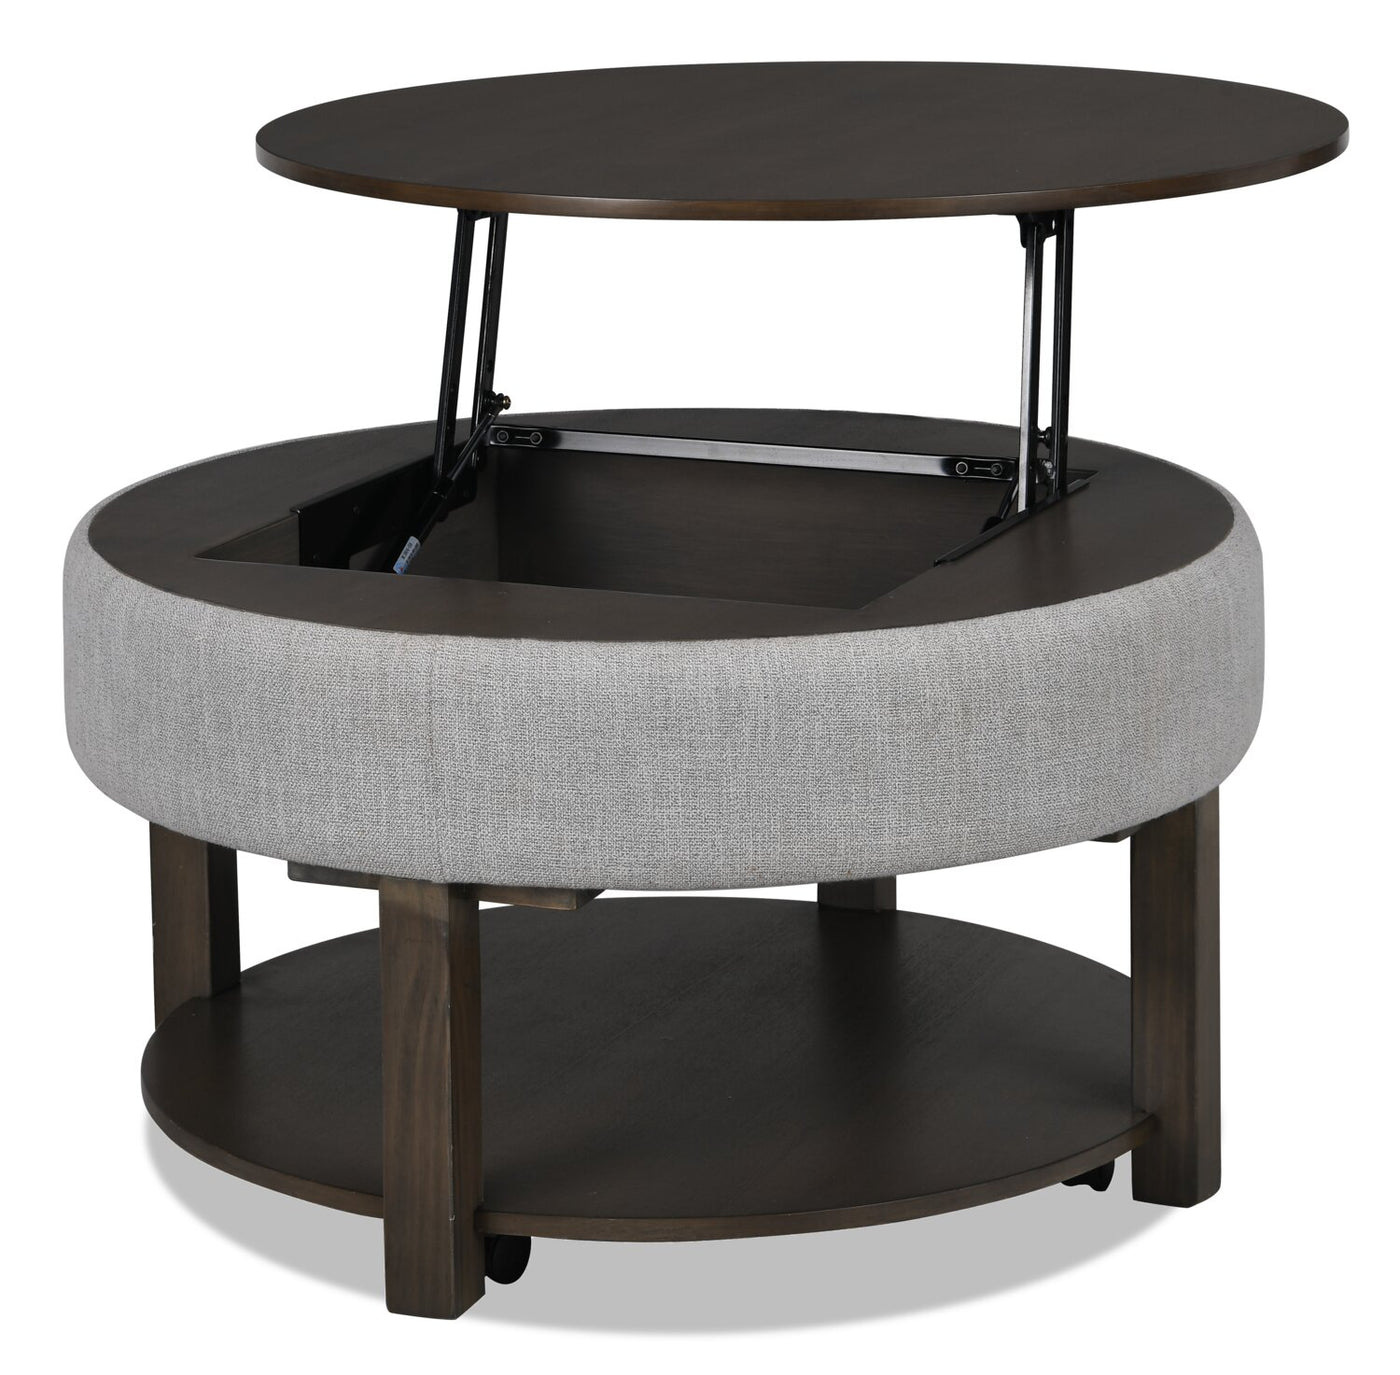 Elroy Coffee Table With Lift Top The Brick [ 1375 x 1400 Pixel ]